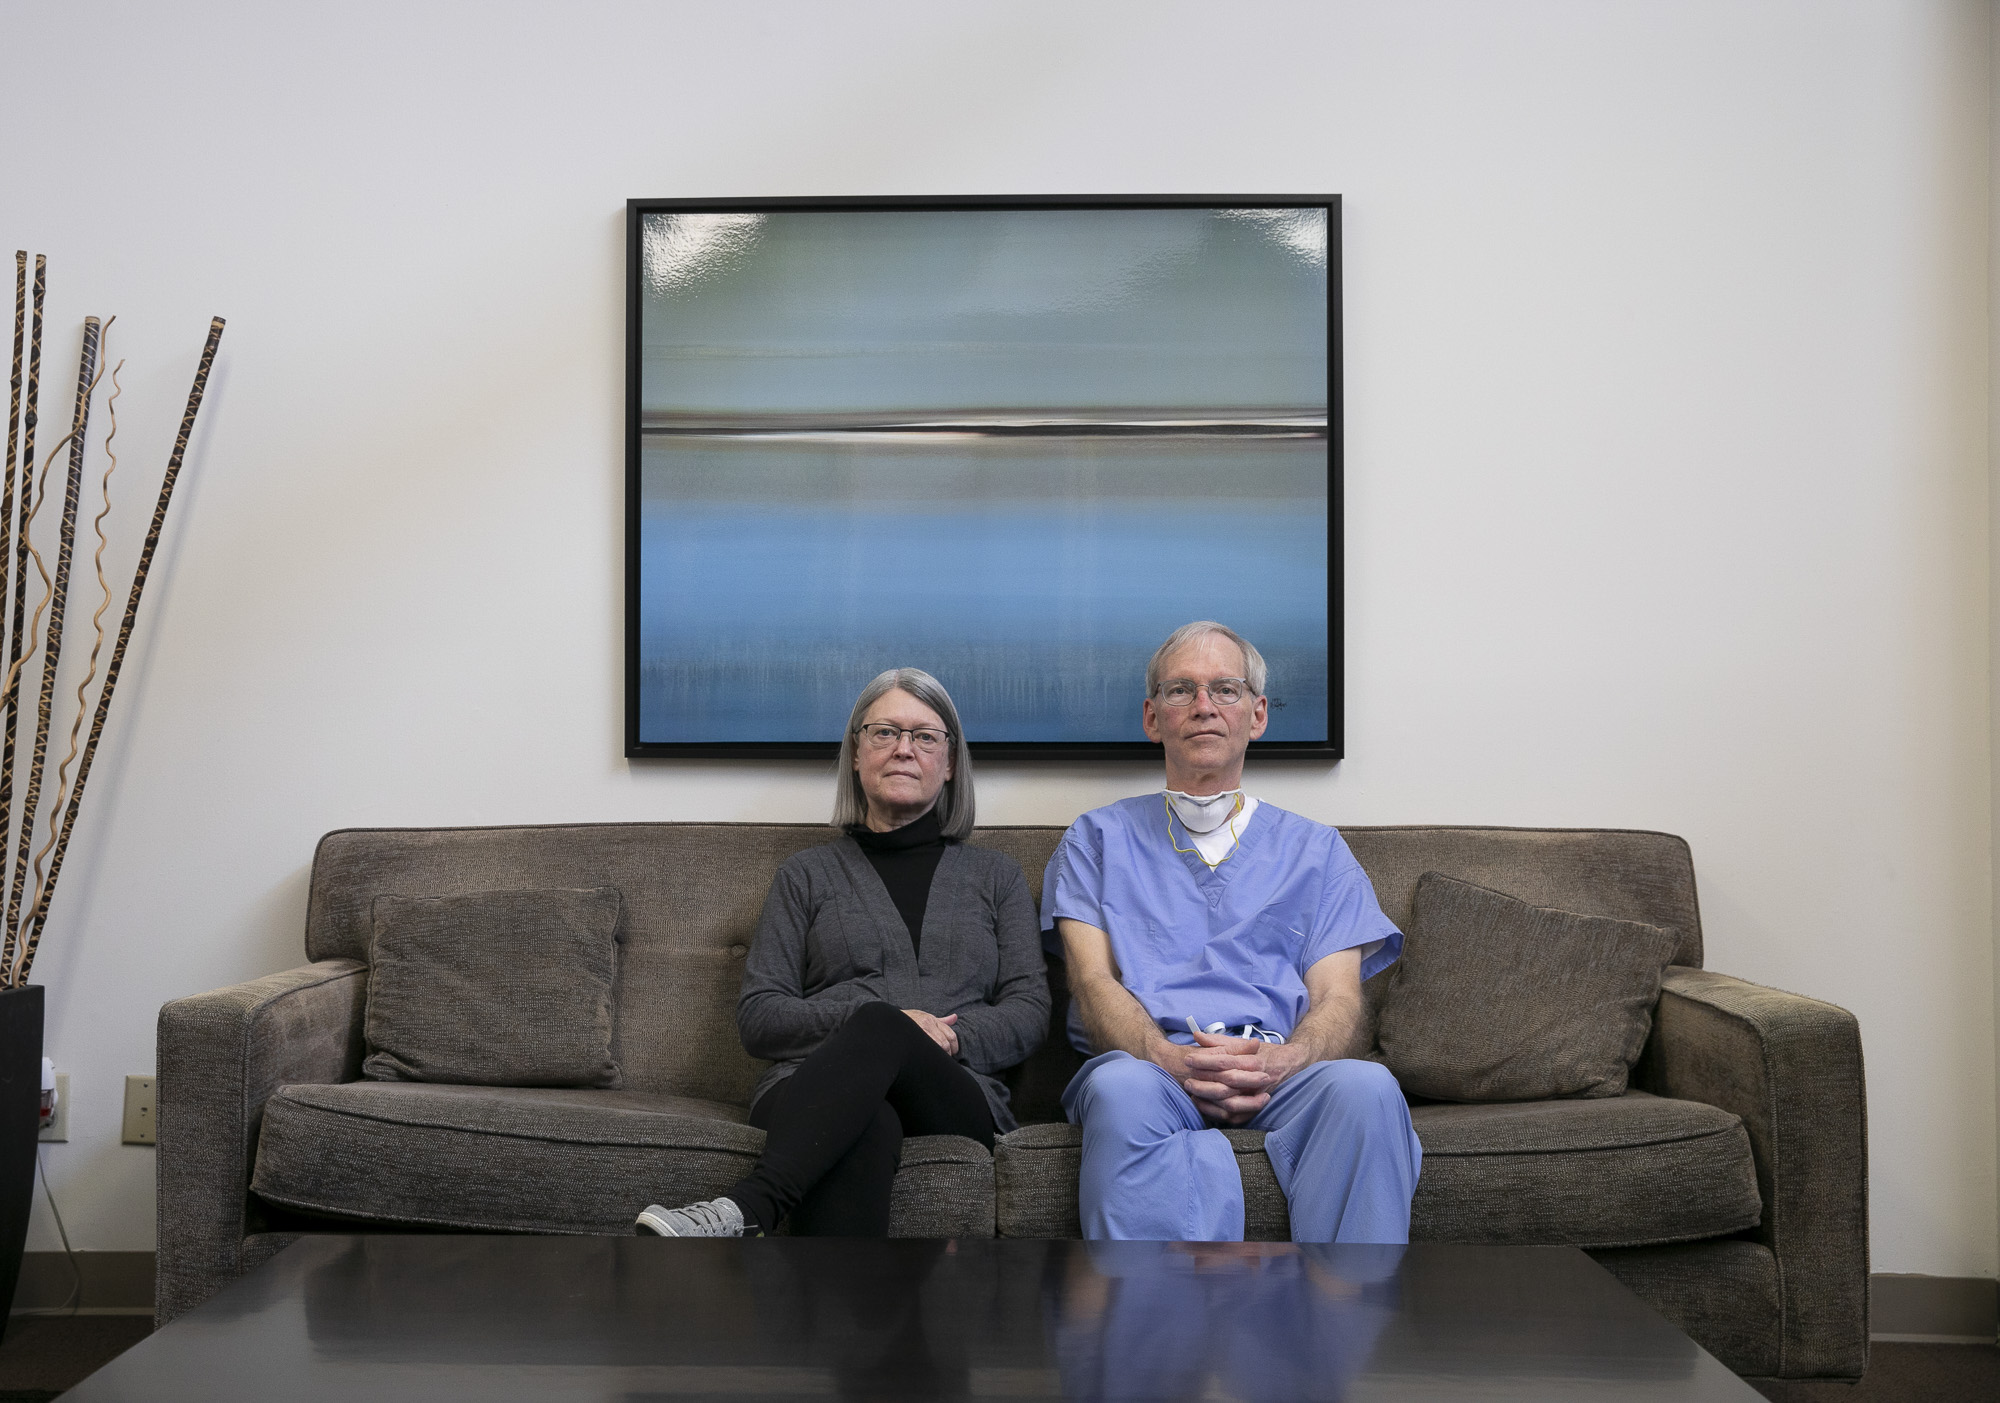 Debbie Rood and Dr. George Scott in their Manteca clinic. Dr. Scott's private OB/GYN practice is being forced to move to a smaller clinic space after their landlord more than tripled their rent in early March. Photo by Anne Wernikoff for CalMatters